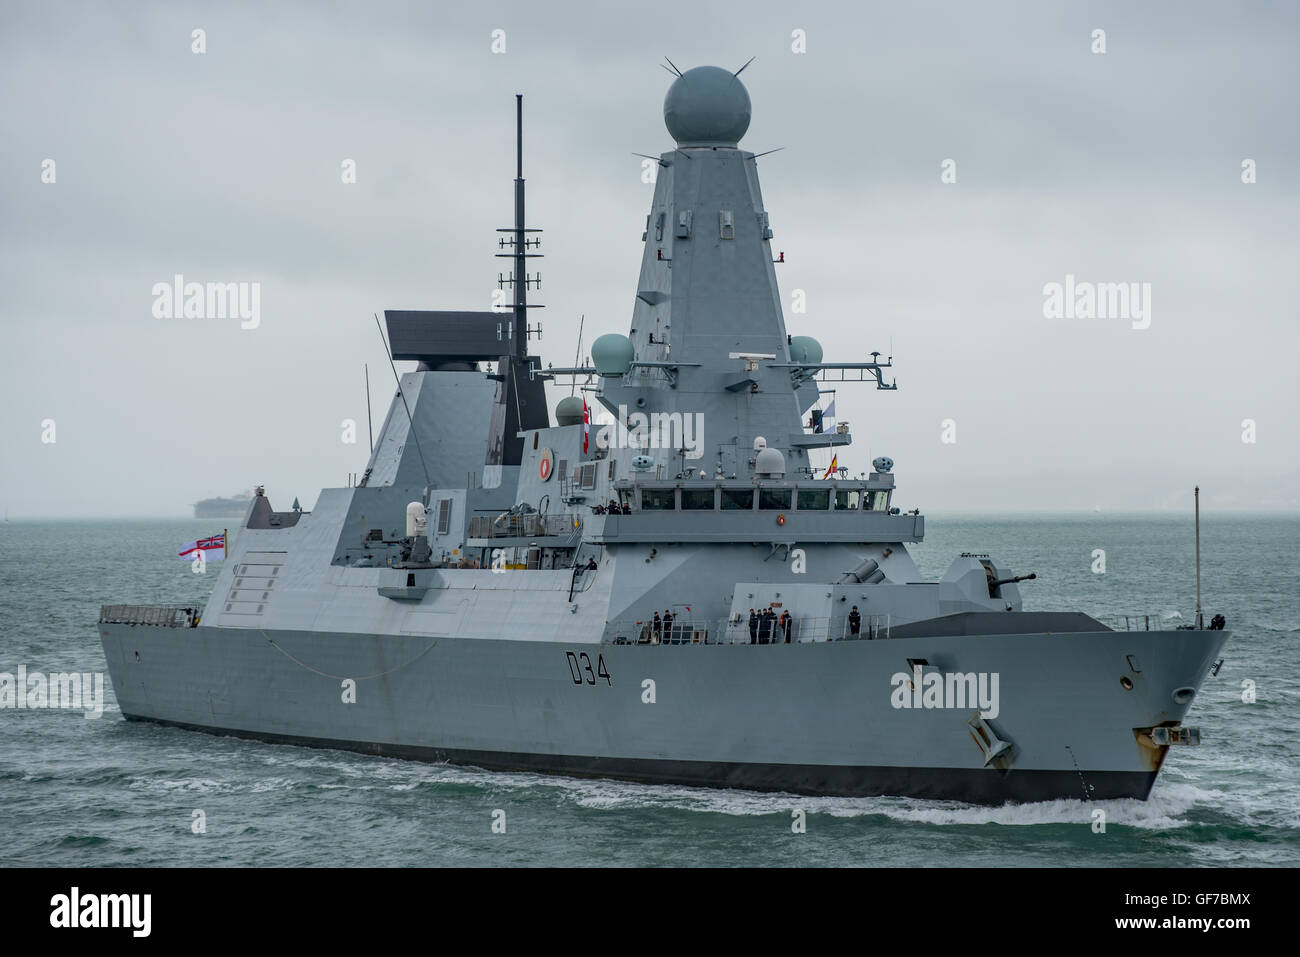 The British Royal Navy warship HMS Diamond (D34) a Type 45 destroyer arriving at Portsmouth, UK on 28th July 2016. - Stock Image